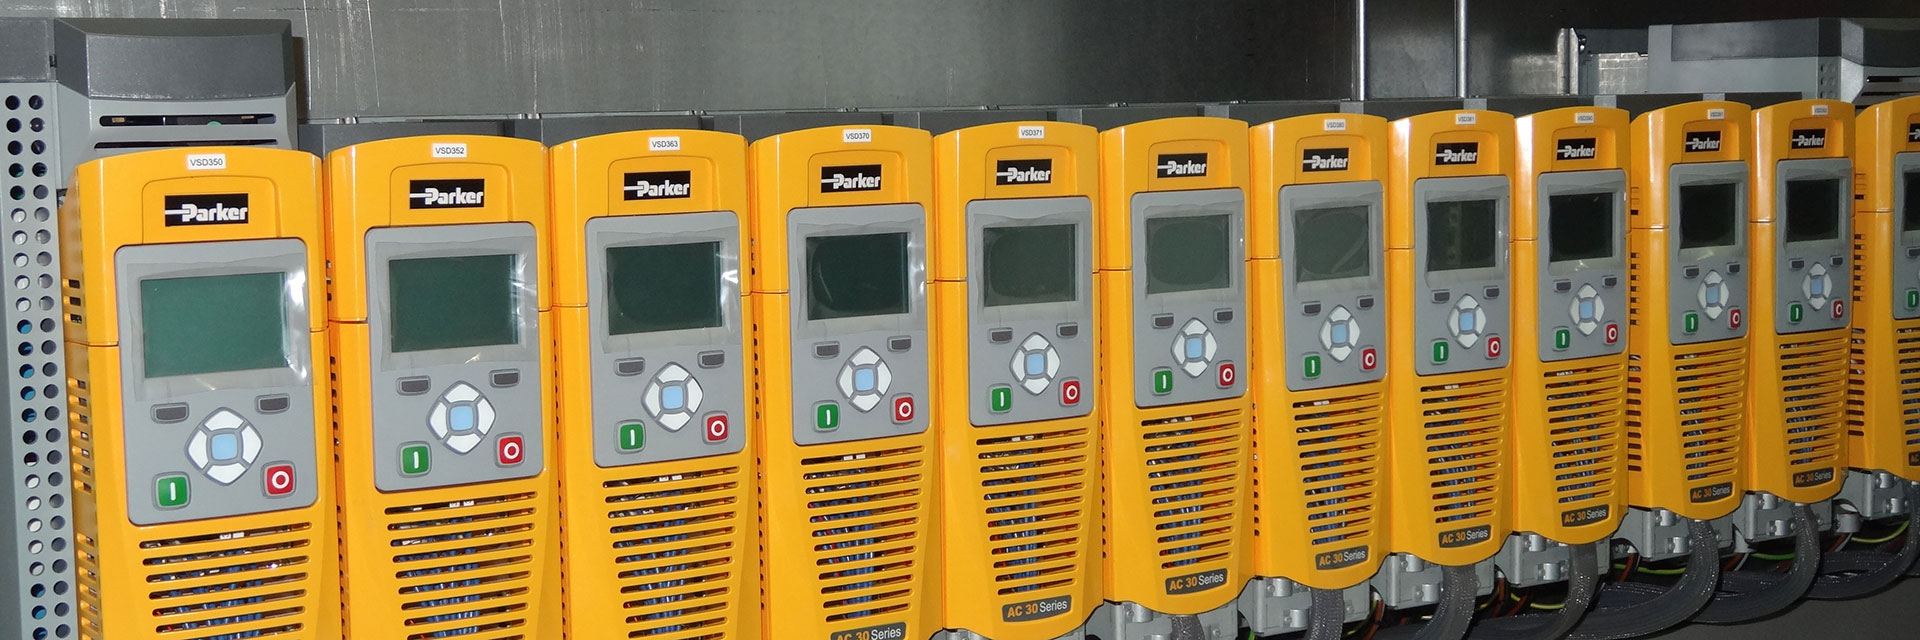 Parker Variable Speed Drives